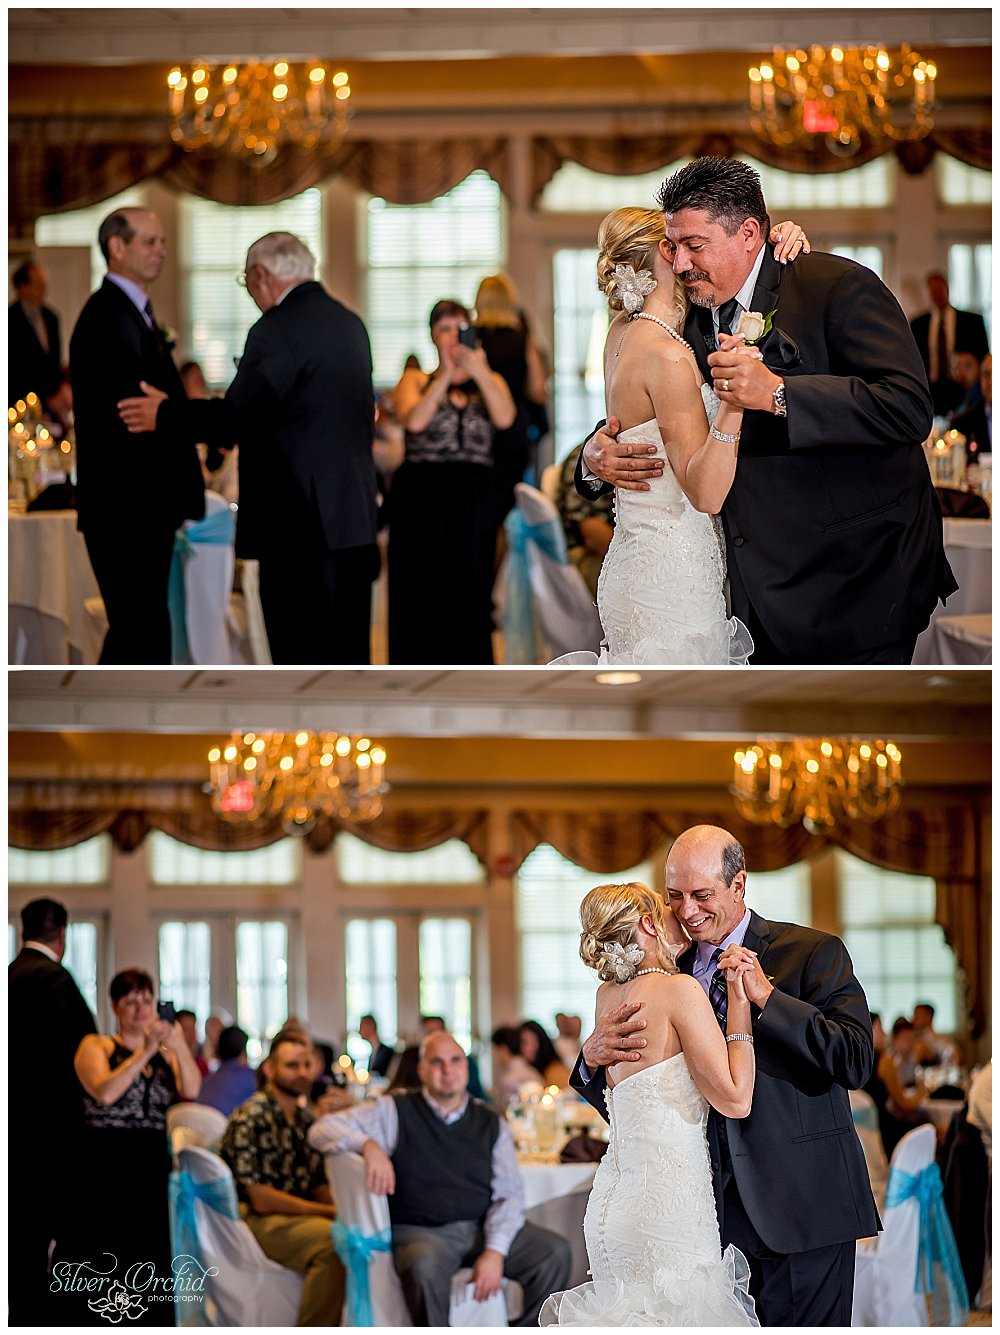 ©Silver Orchid Photography_wedding photography_CantandoBrooksideMacungie_silverorchidphotography.com_0099.jpg